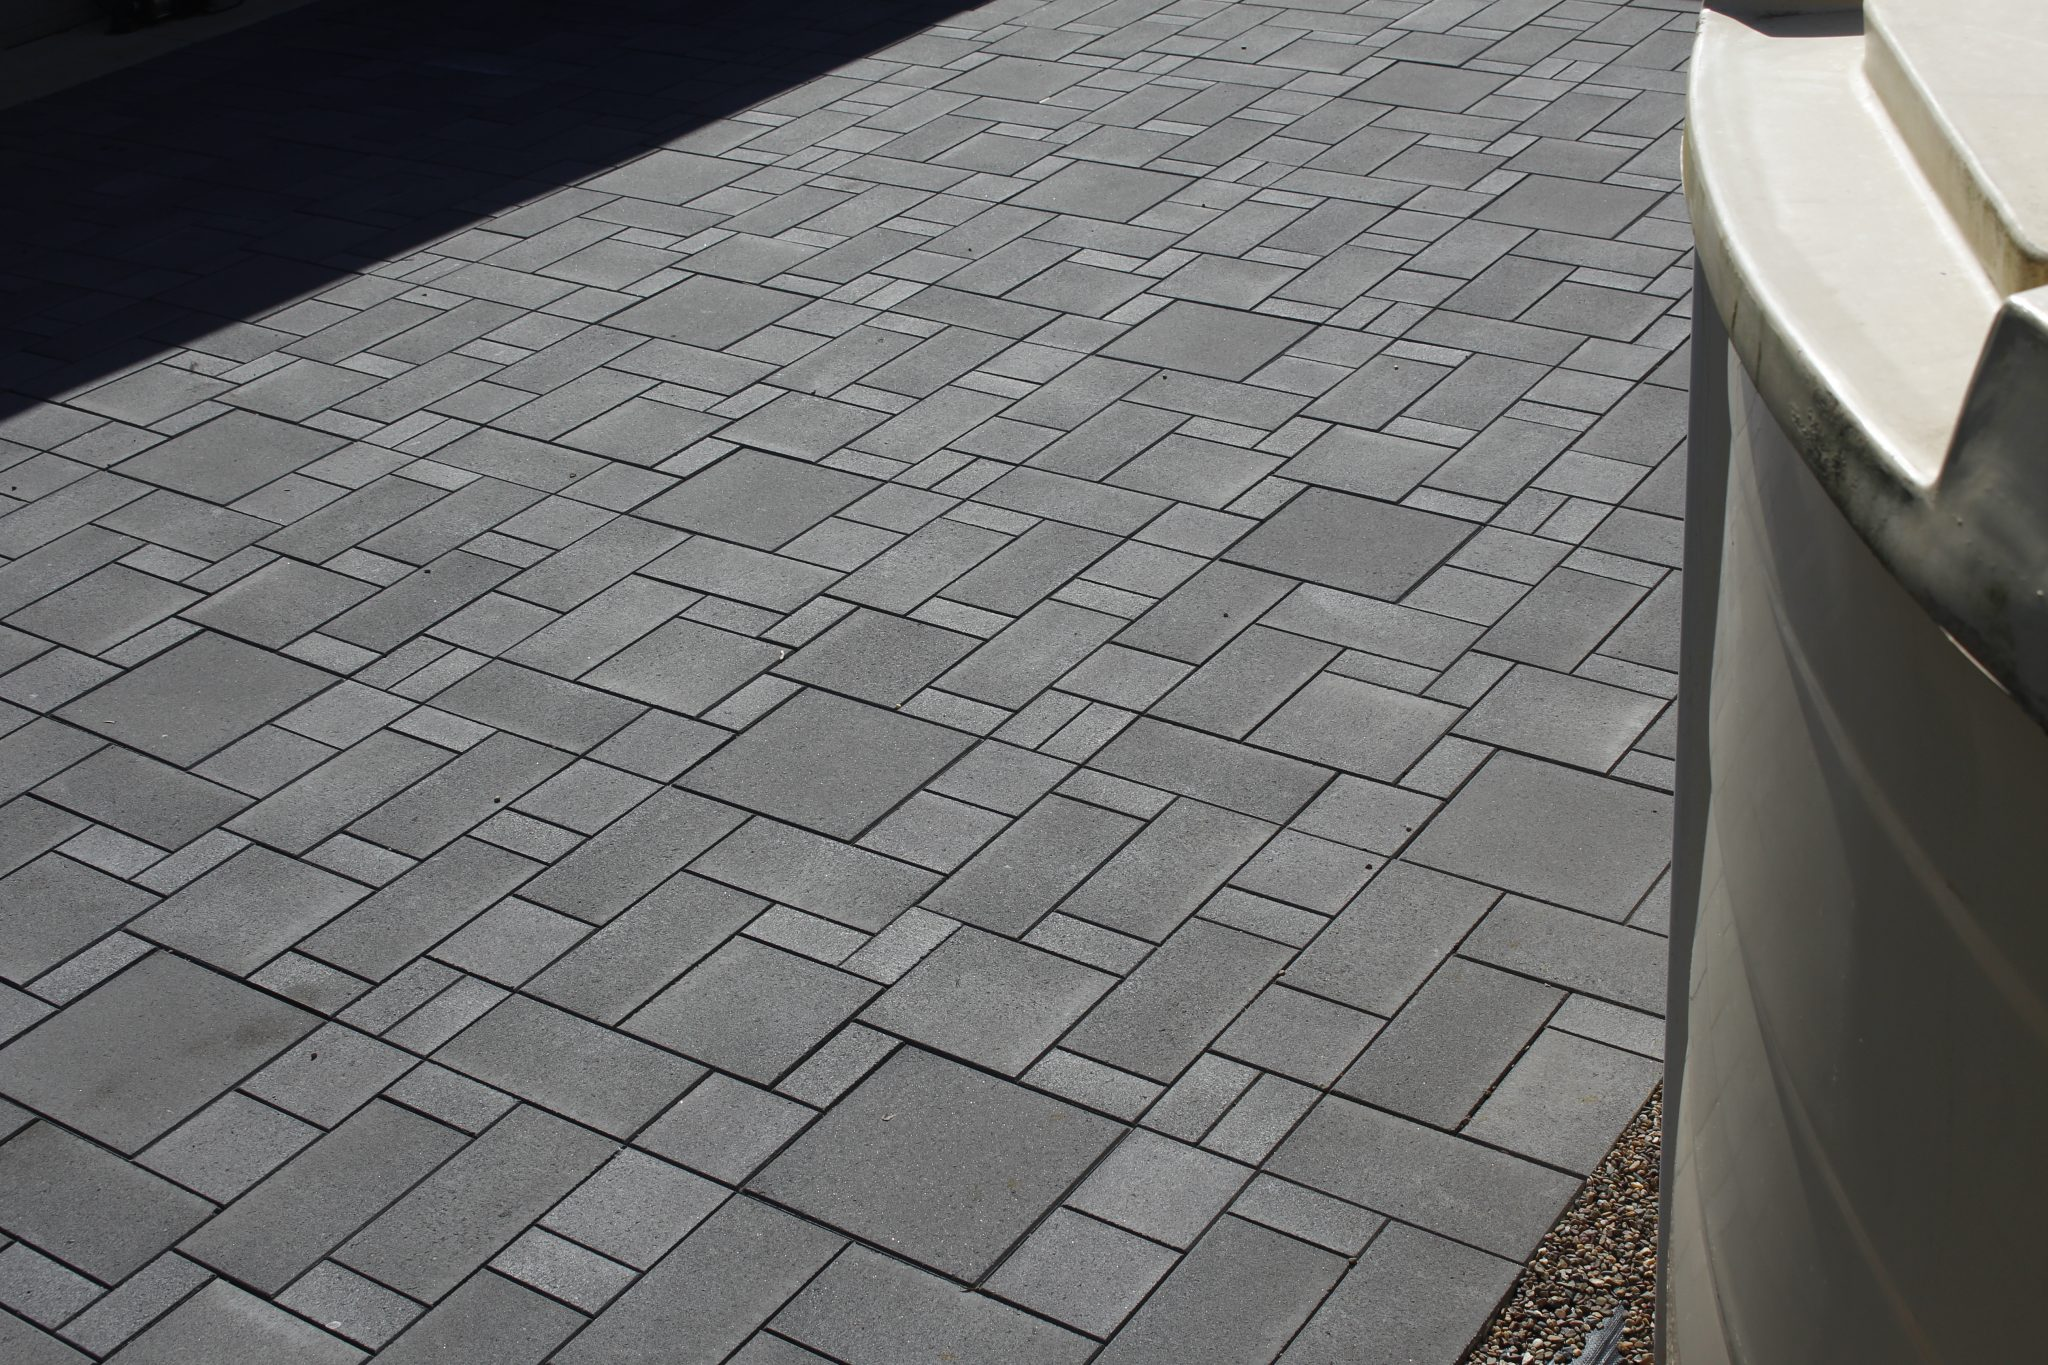 French_paving_pattern_Charcoal